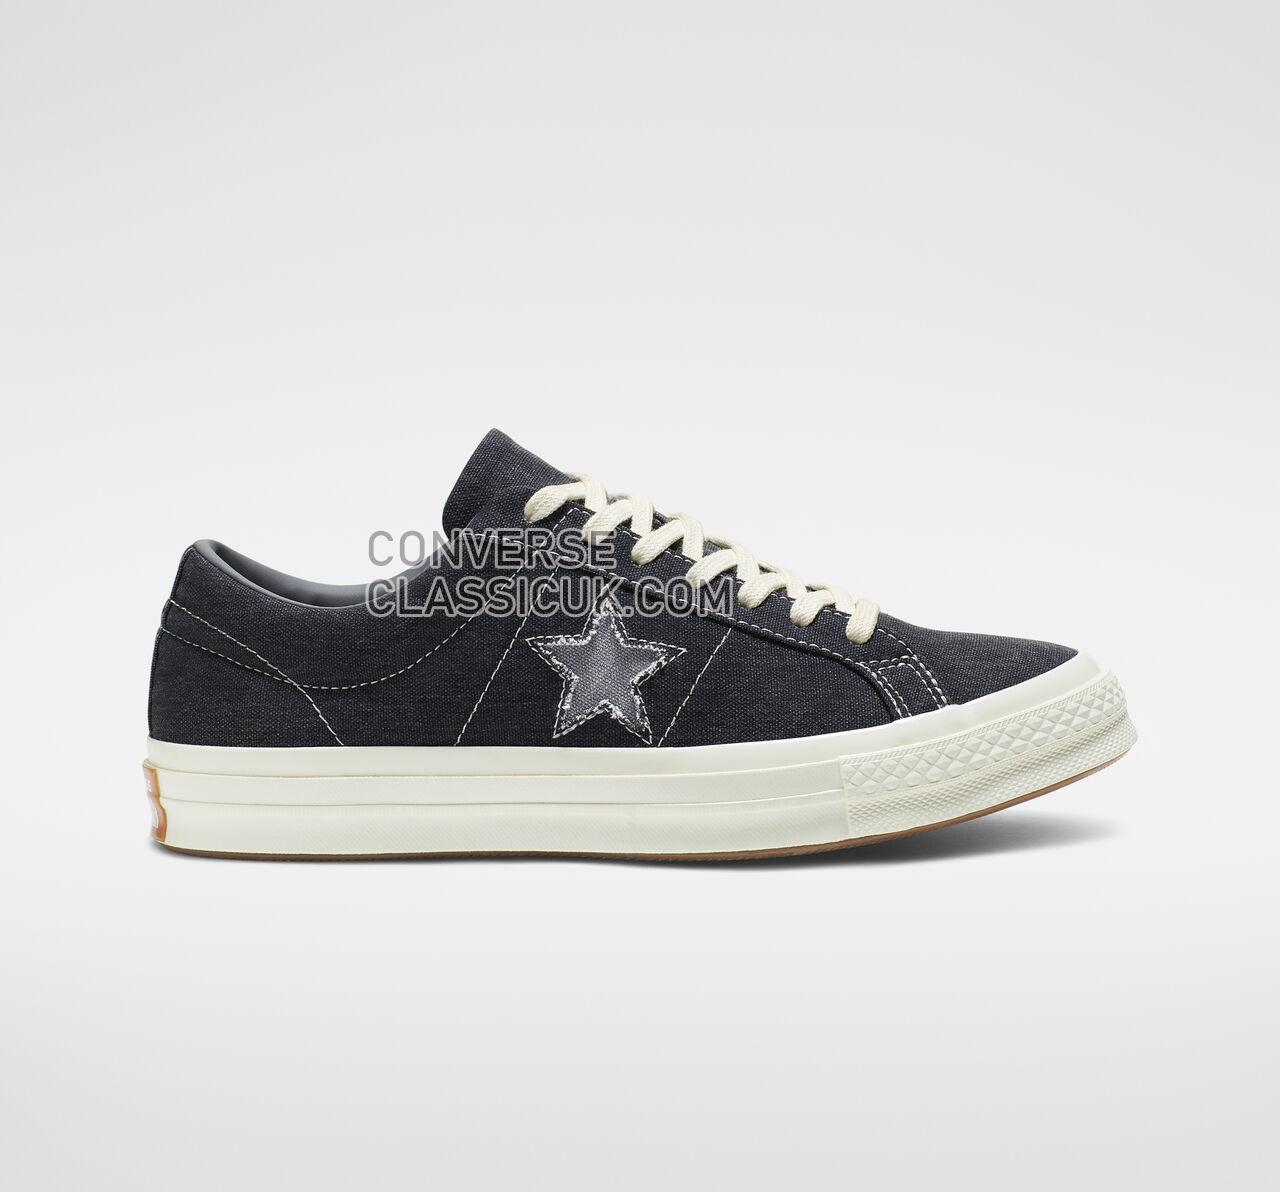 Converse One Star Sunbaked Mens Womens Unisex 164360C Black/Mason/Egret Shoes